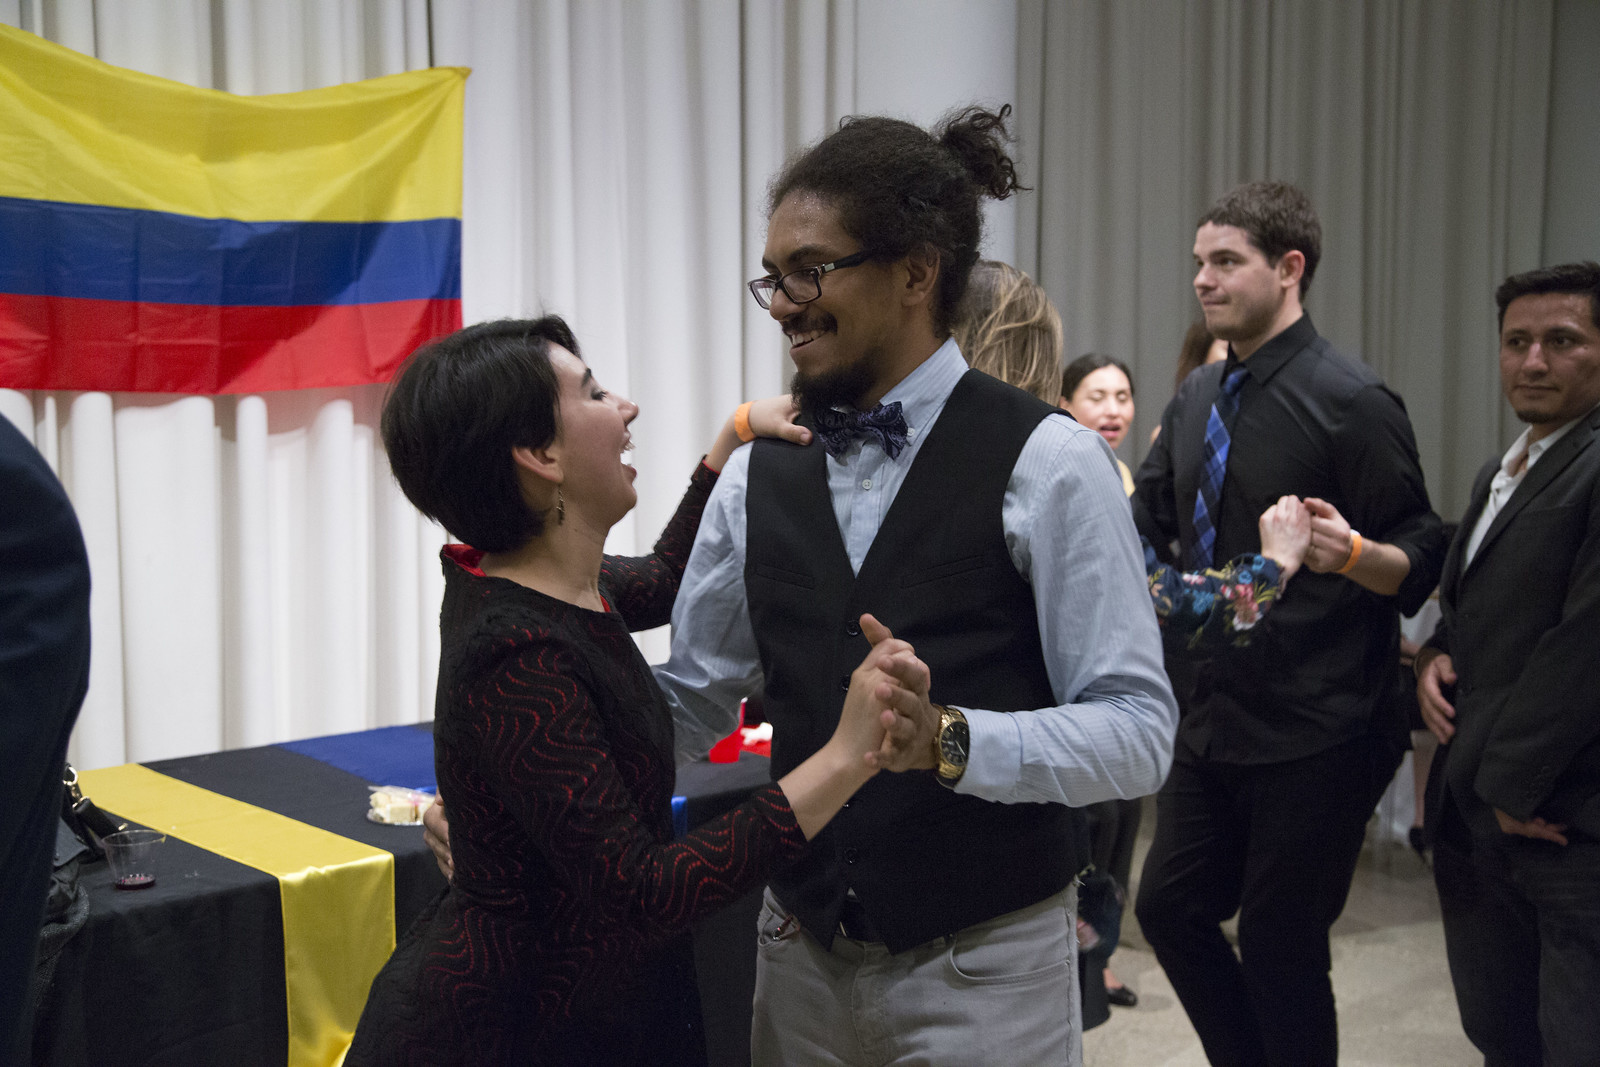 35th CLFF - Closing Night: Celebrating Colombia